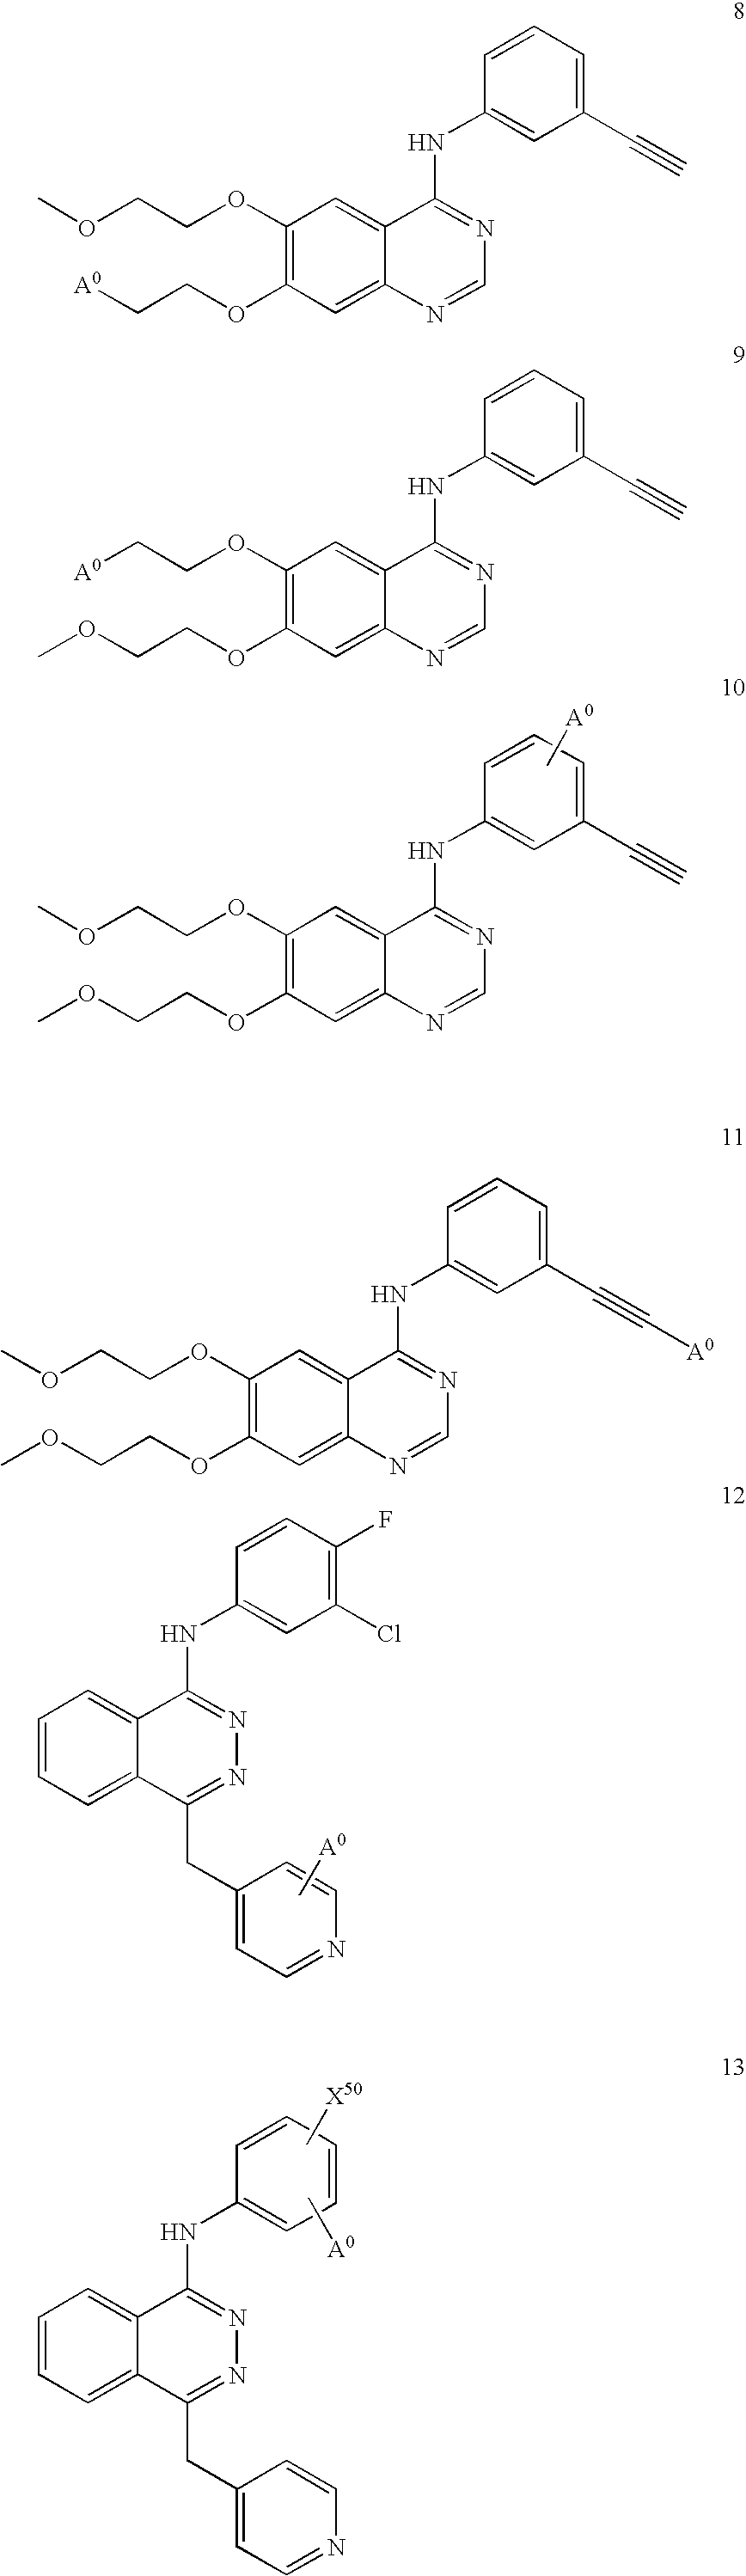 Us20050153990a1 Phosphonate Substituted Kinase Inhibitors Google Wiring Diagram 1477 Bolens Figure 20050714 C00096